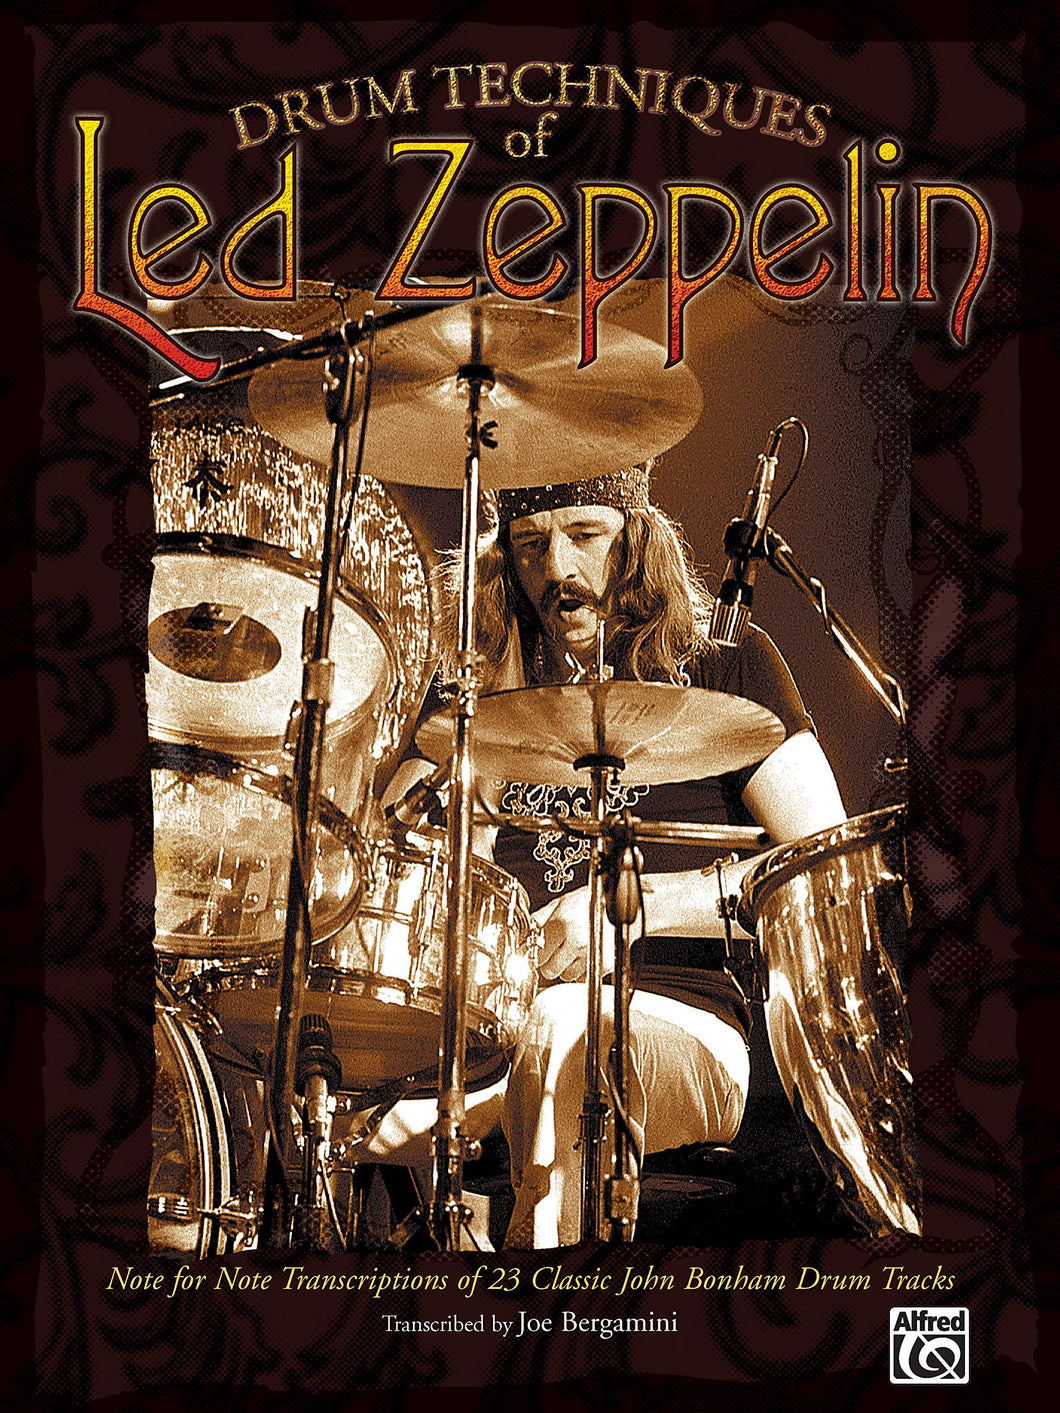 Stairway to Heaven - Led Zeppelin - Collection of Drum Transcriptions / Drum Sheet Music - Alfred Music DTLZNFNT